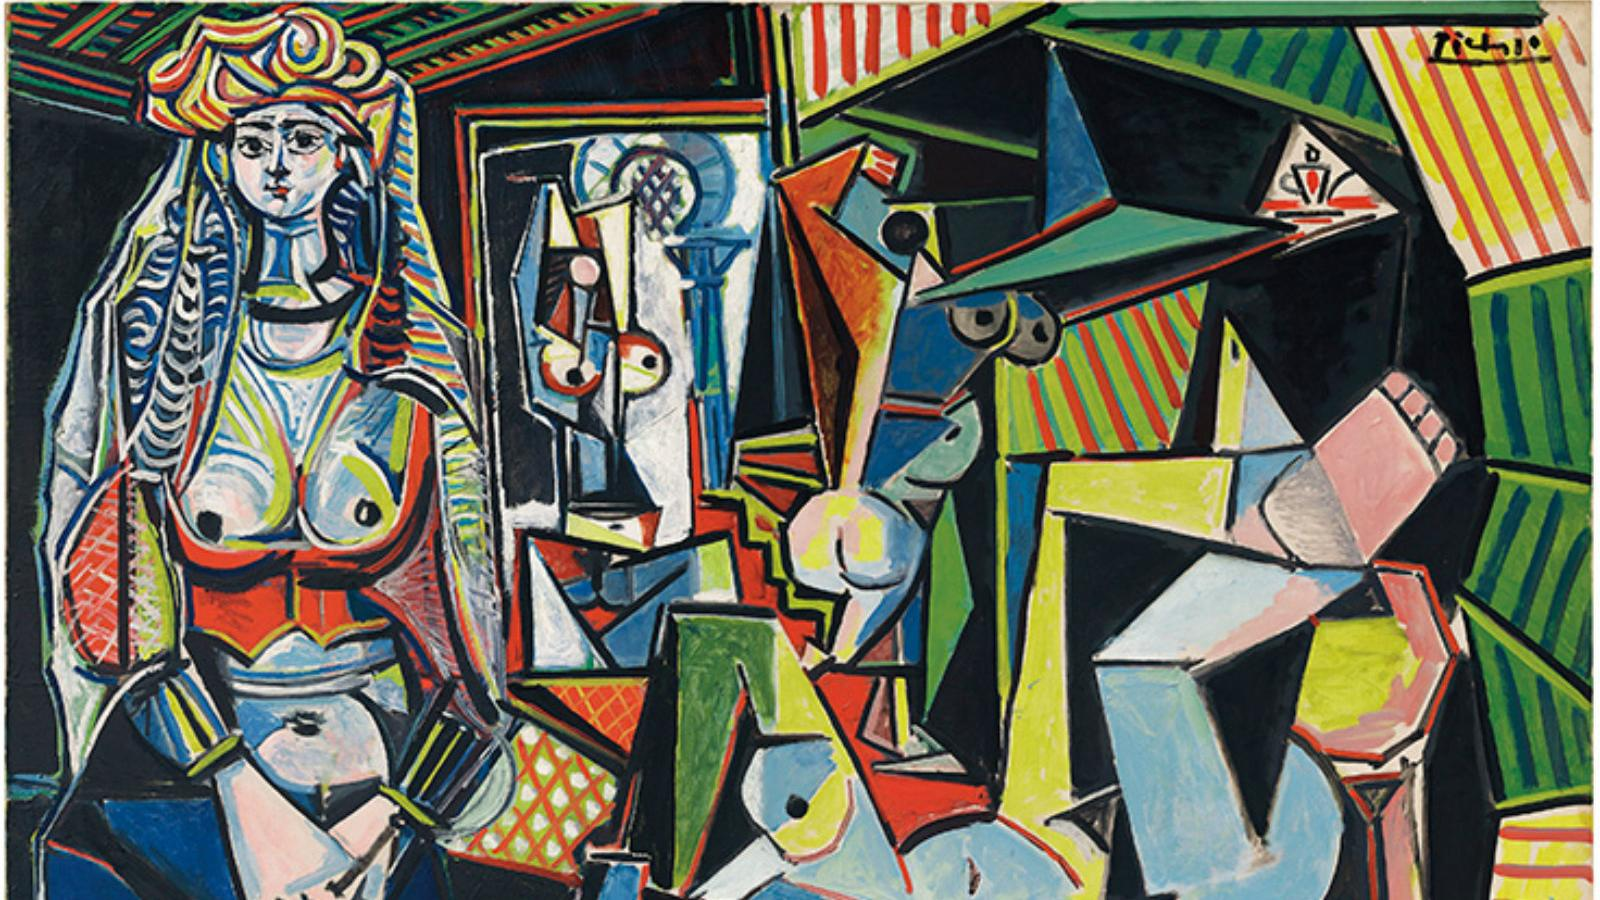 This 179 million picasso is now the most expensive painting ever sold at auction